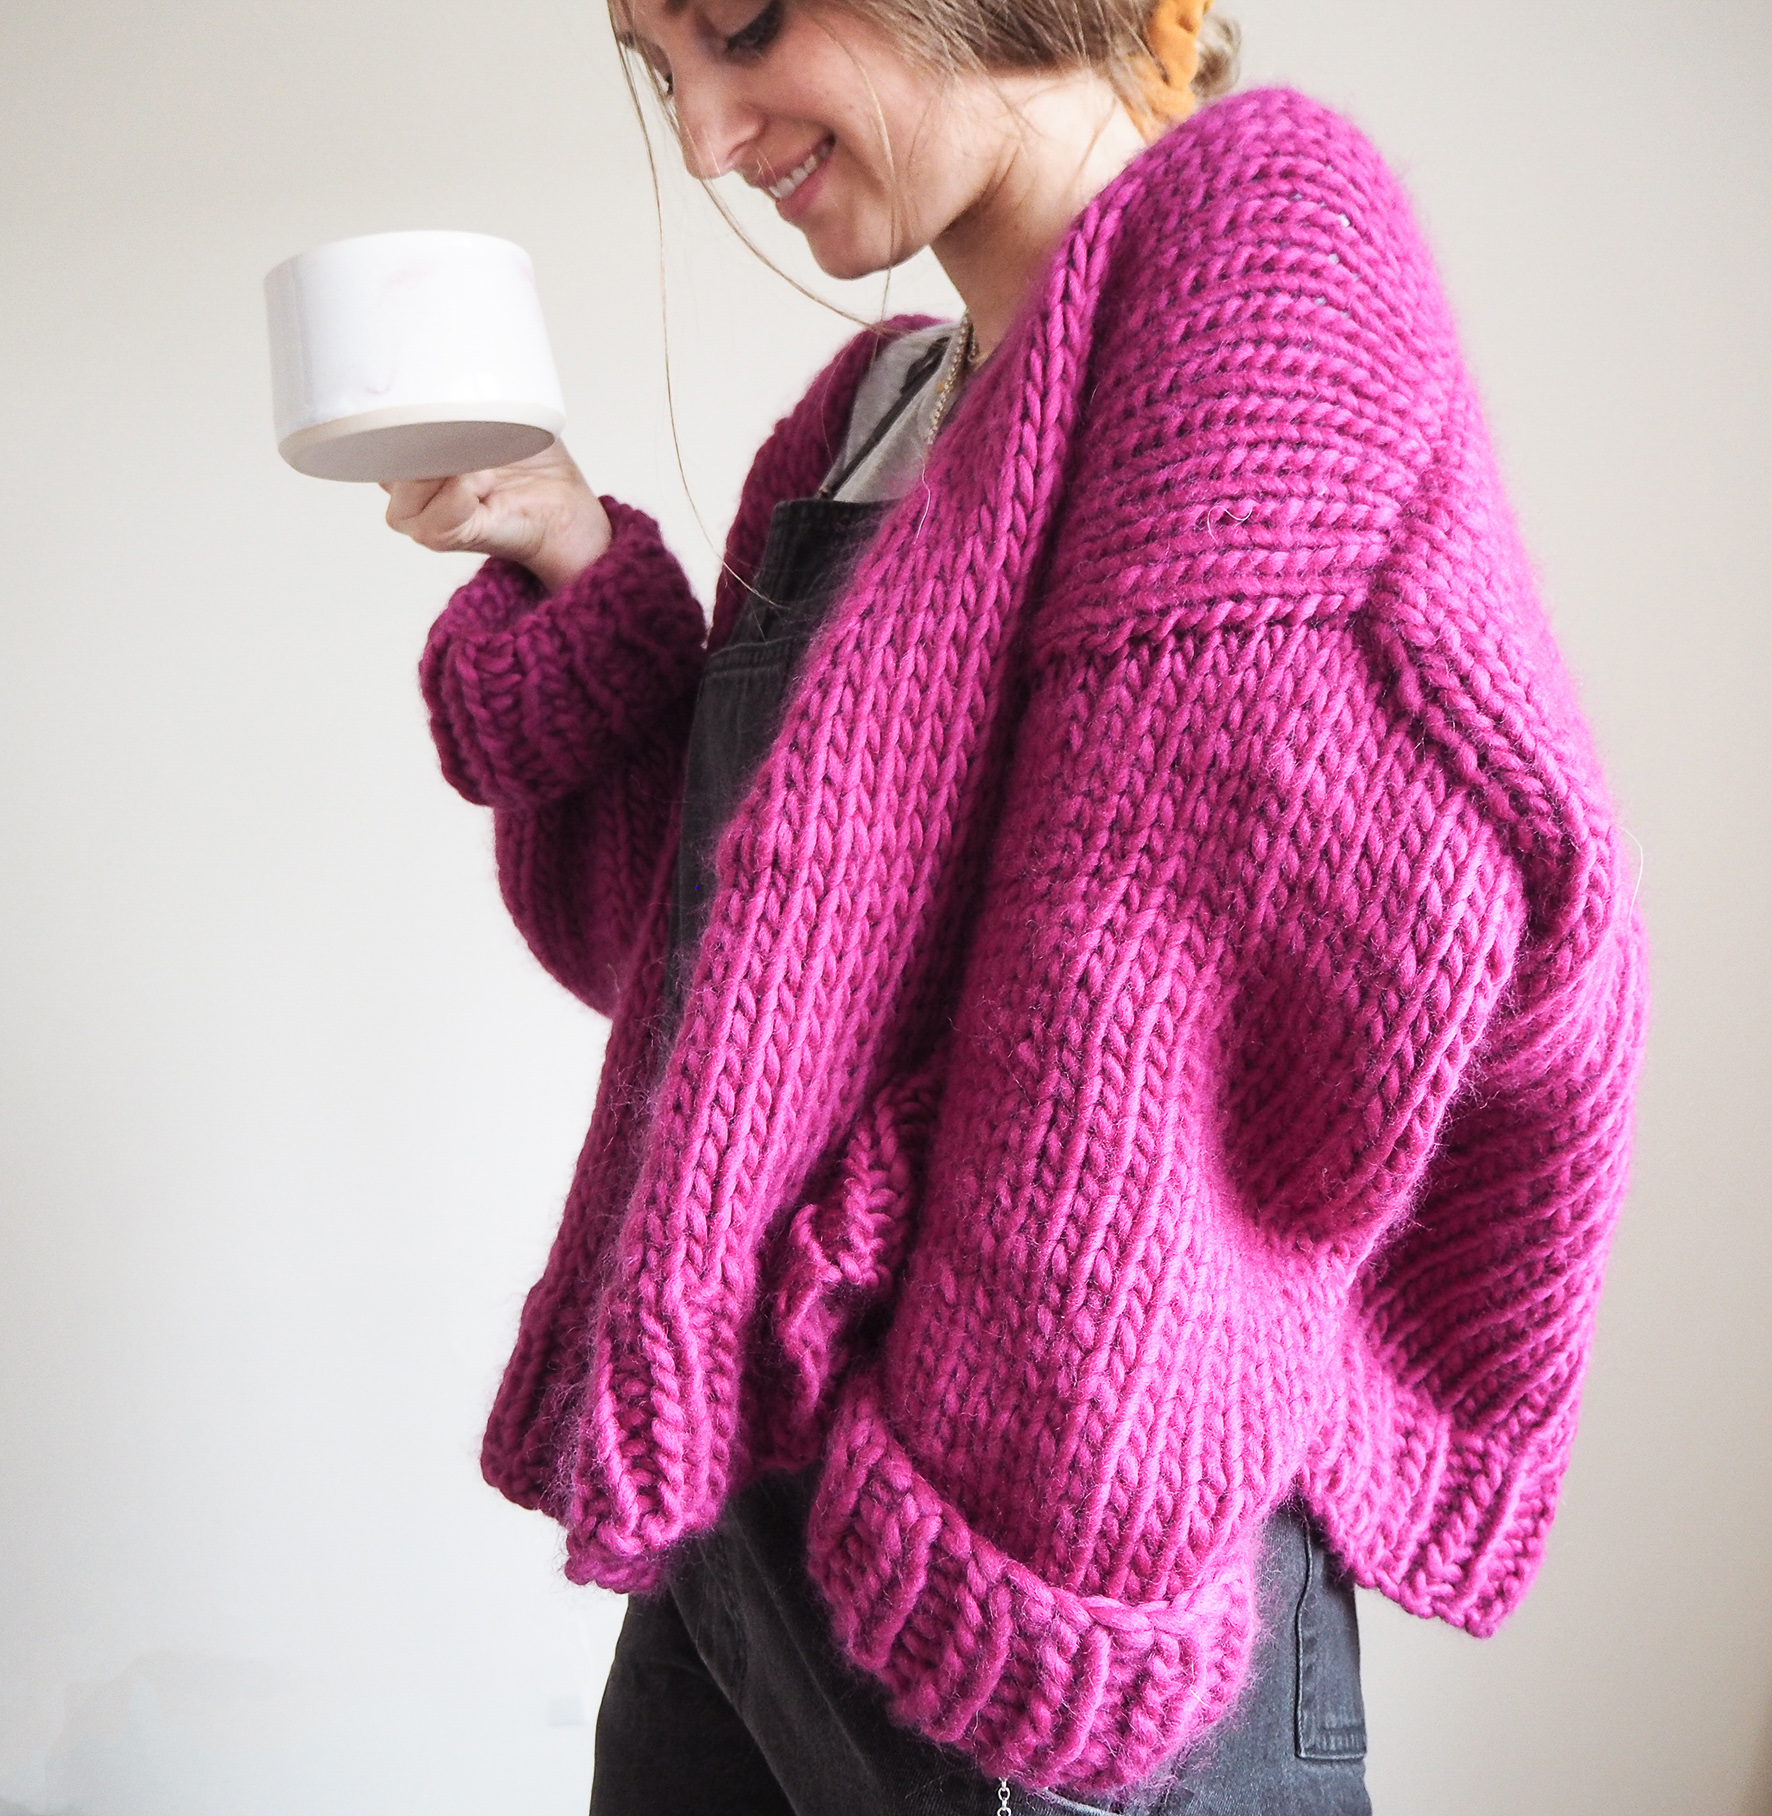 Lauren Aston Designs Cardigan Kit